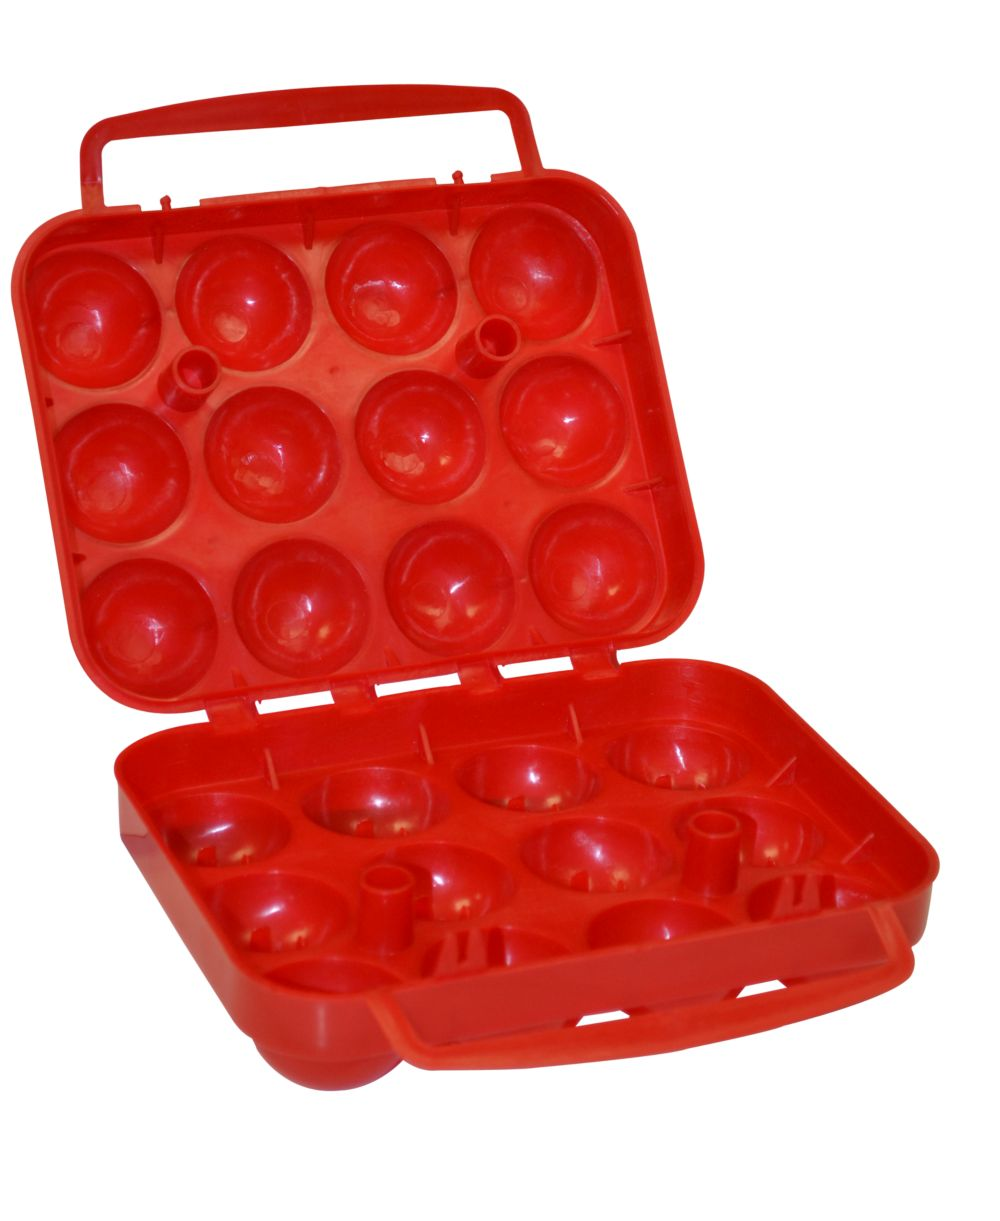 12 Count Egg Container